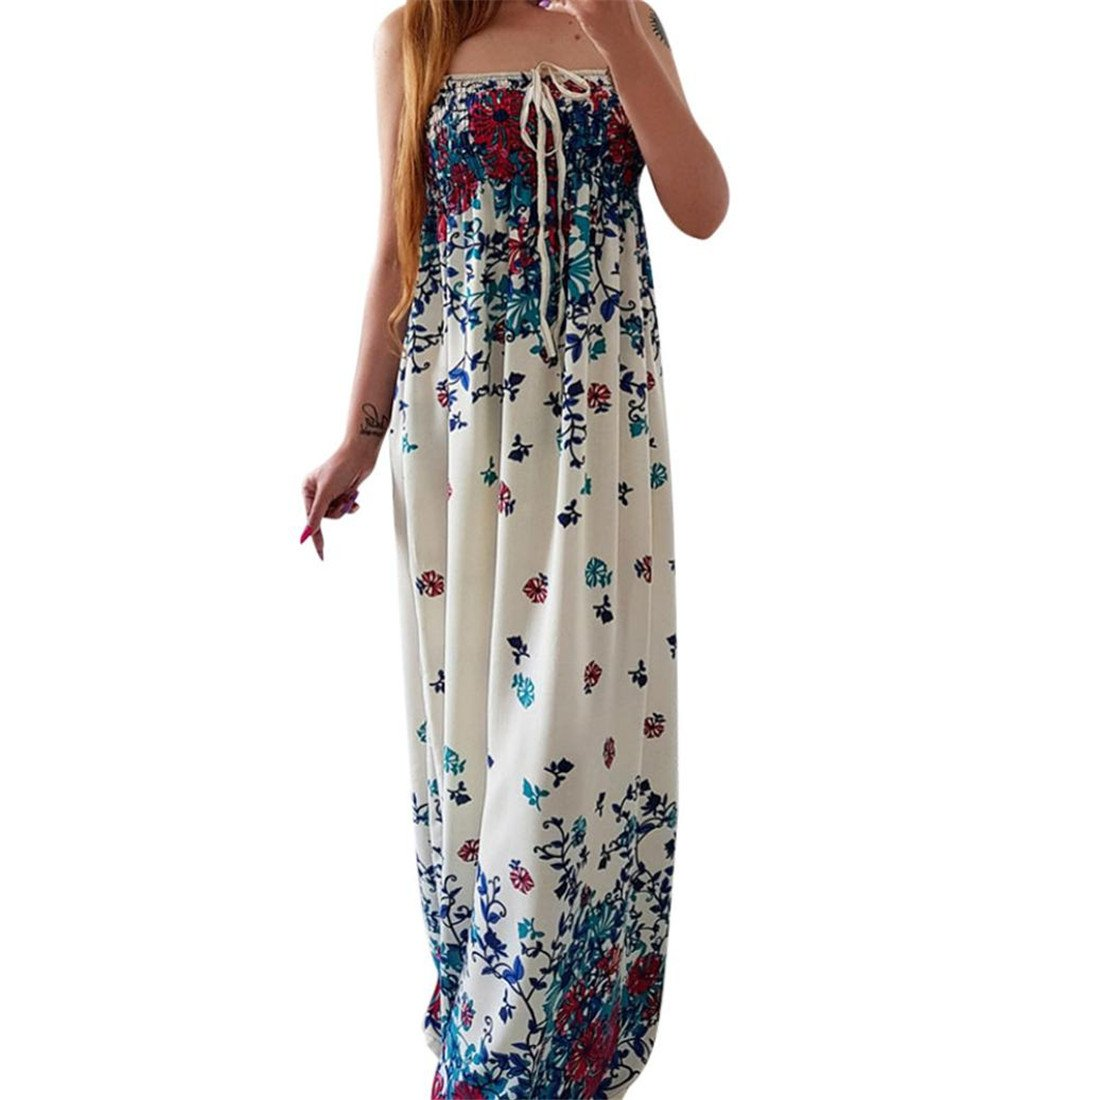 Womens Dresses,Womens Dresses Summer,Womens Dresses Elegant,Womens Dress Casual,Moonuy,Girl Ladies Off Shoulder Floral Printed Lace-up Sleeveless Maxi Long ...